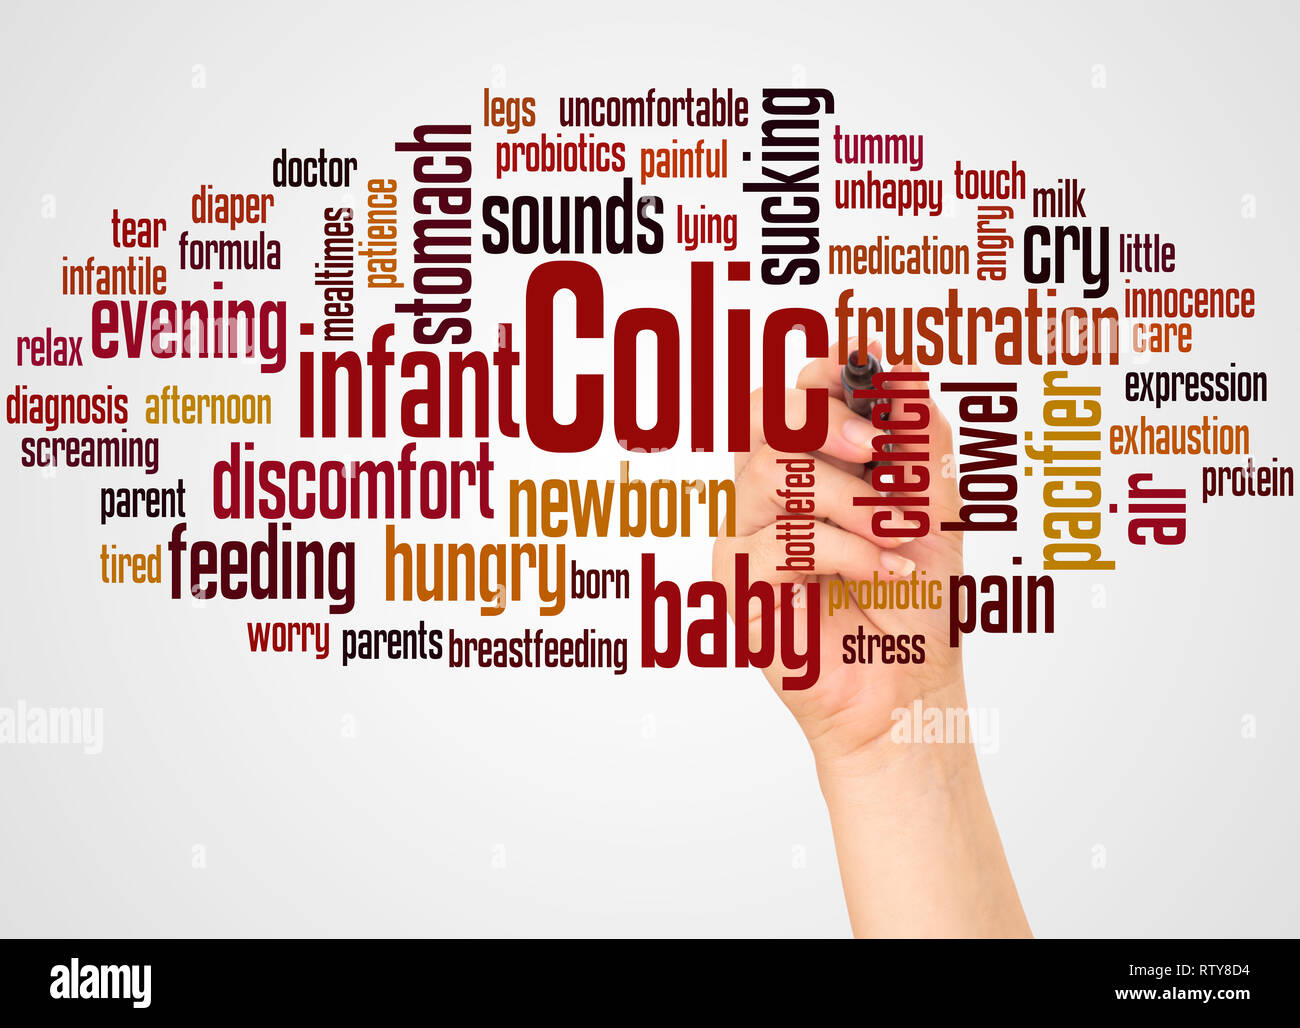 Colic Infant Stock Photos & Colic Infant Stock Images - Alamy